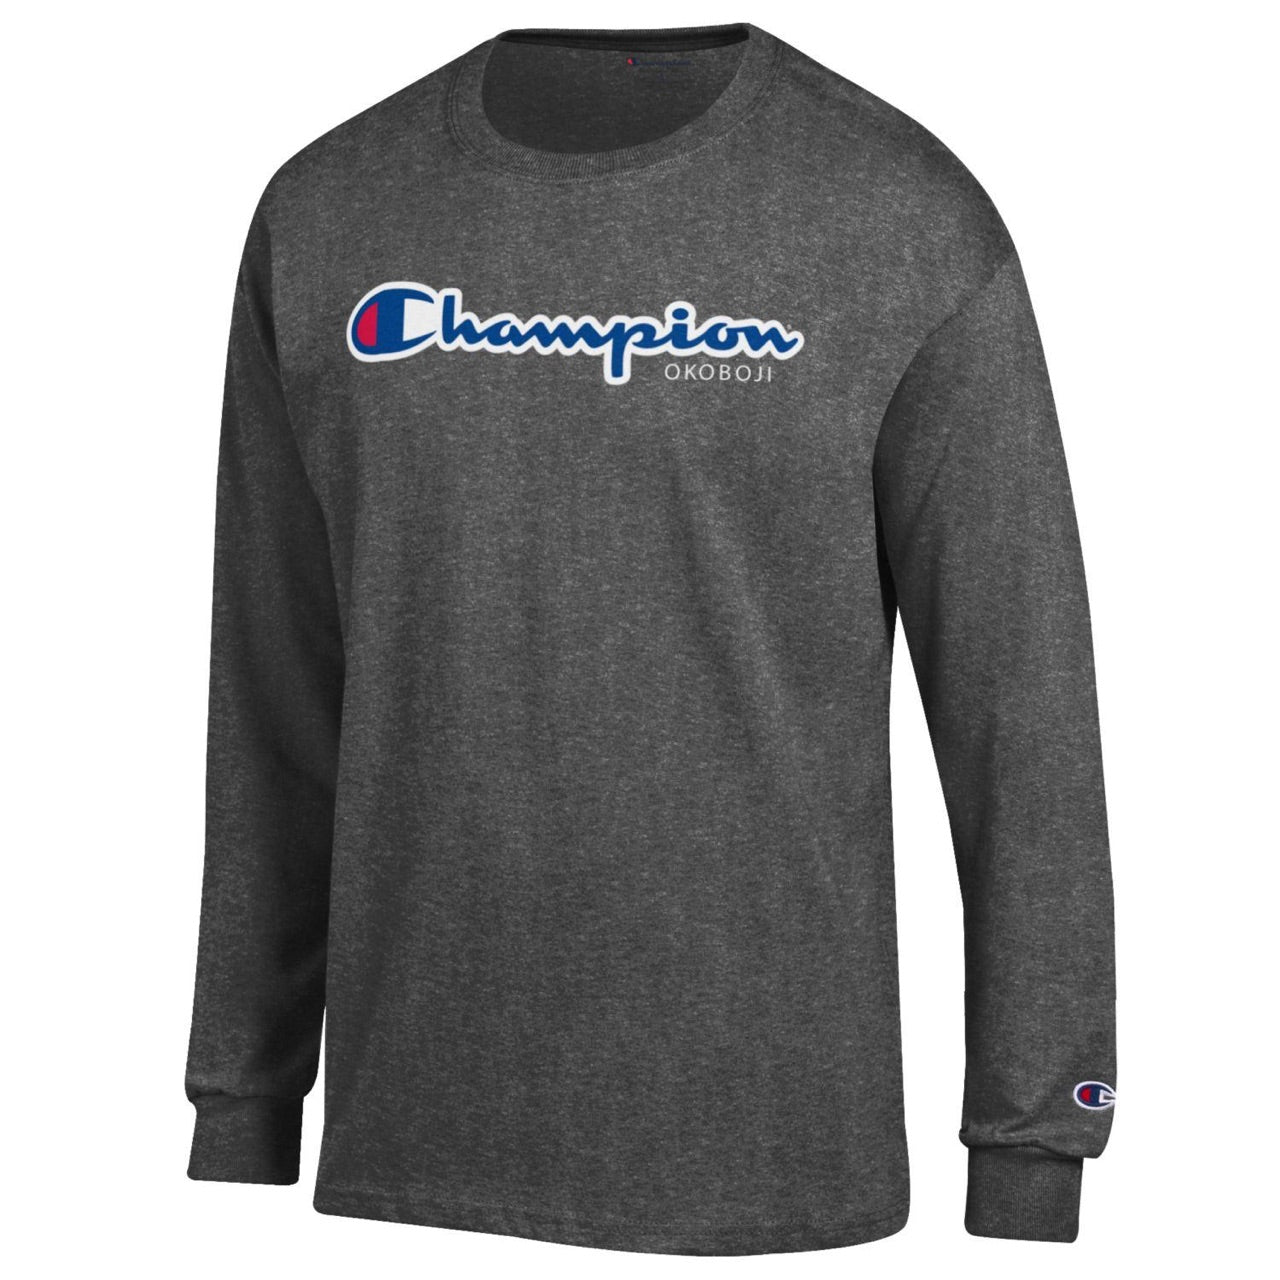 Champion® of Okoboji Long Sleeve - Champion Charcoal